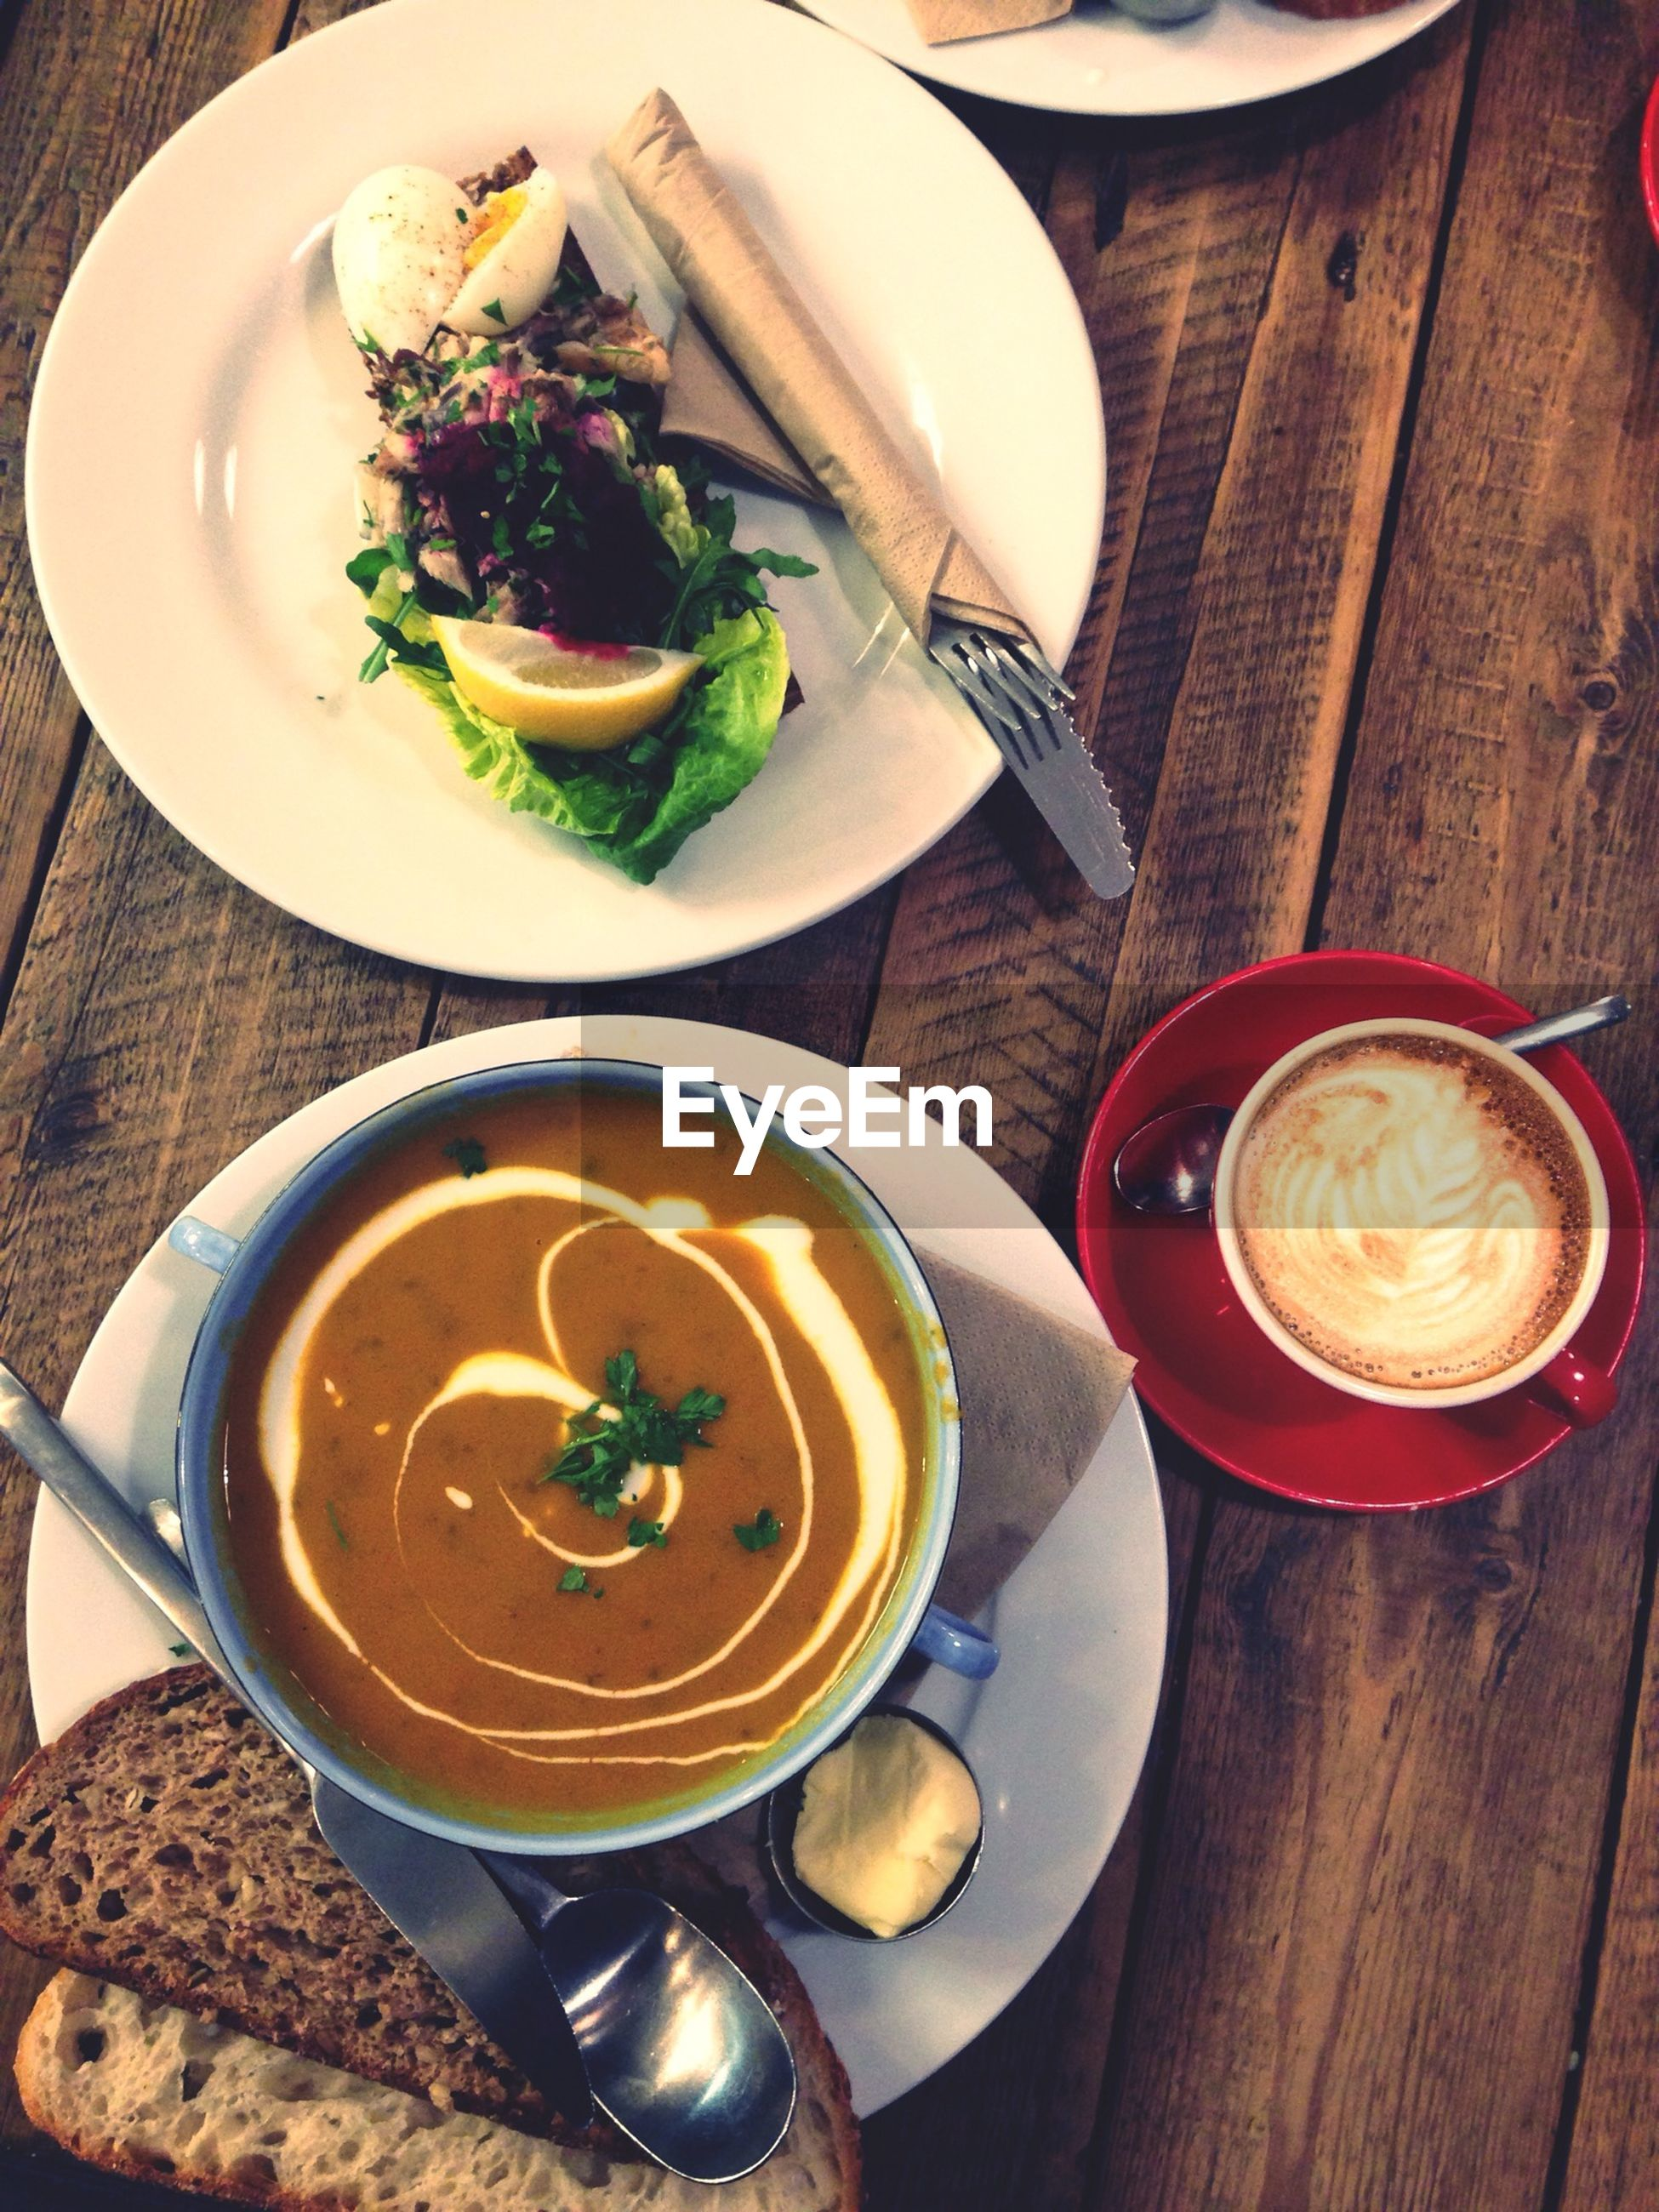 food and drink, freshness, table, indoors, food, plate, drink, ready-to-eat, still life, healthy eating, refreshment, serving size, high angle view, meal, spoon, bowl, served, wood - material, coffee cup, close-up